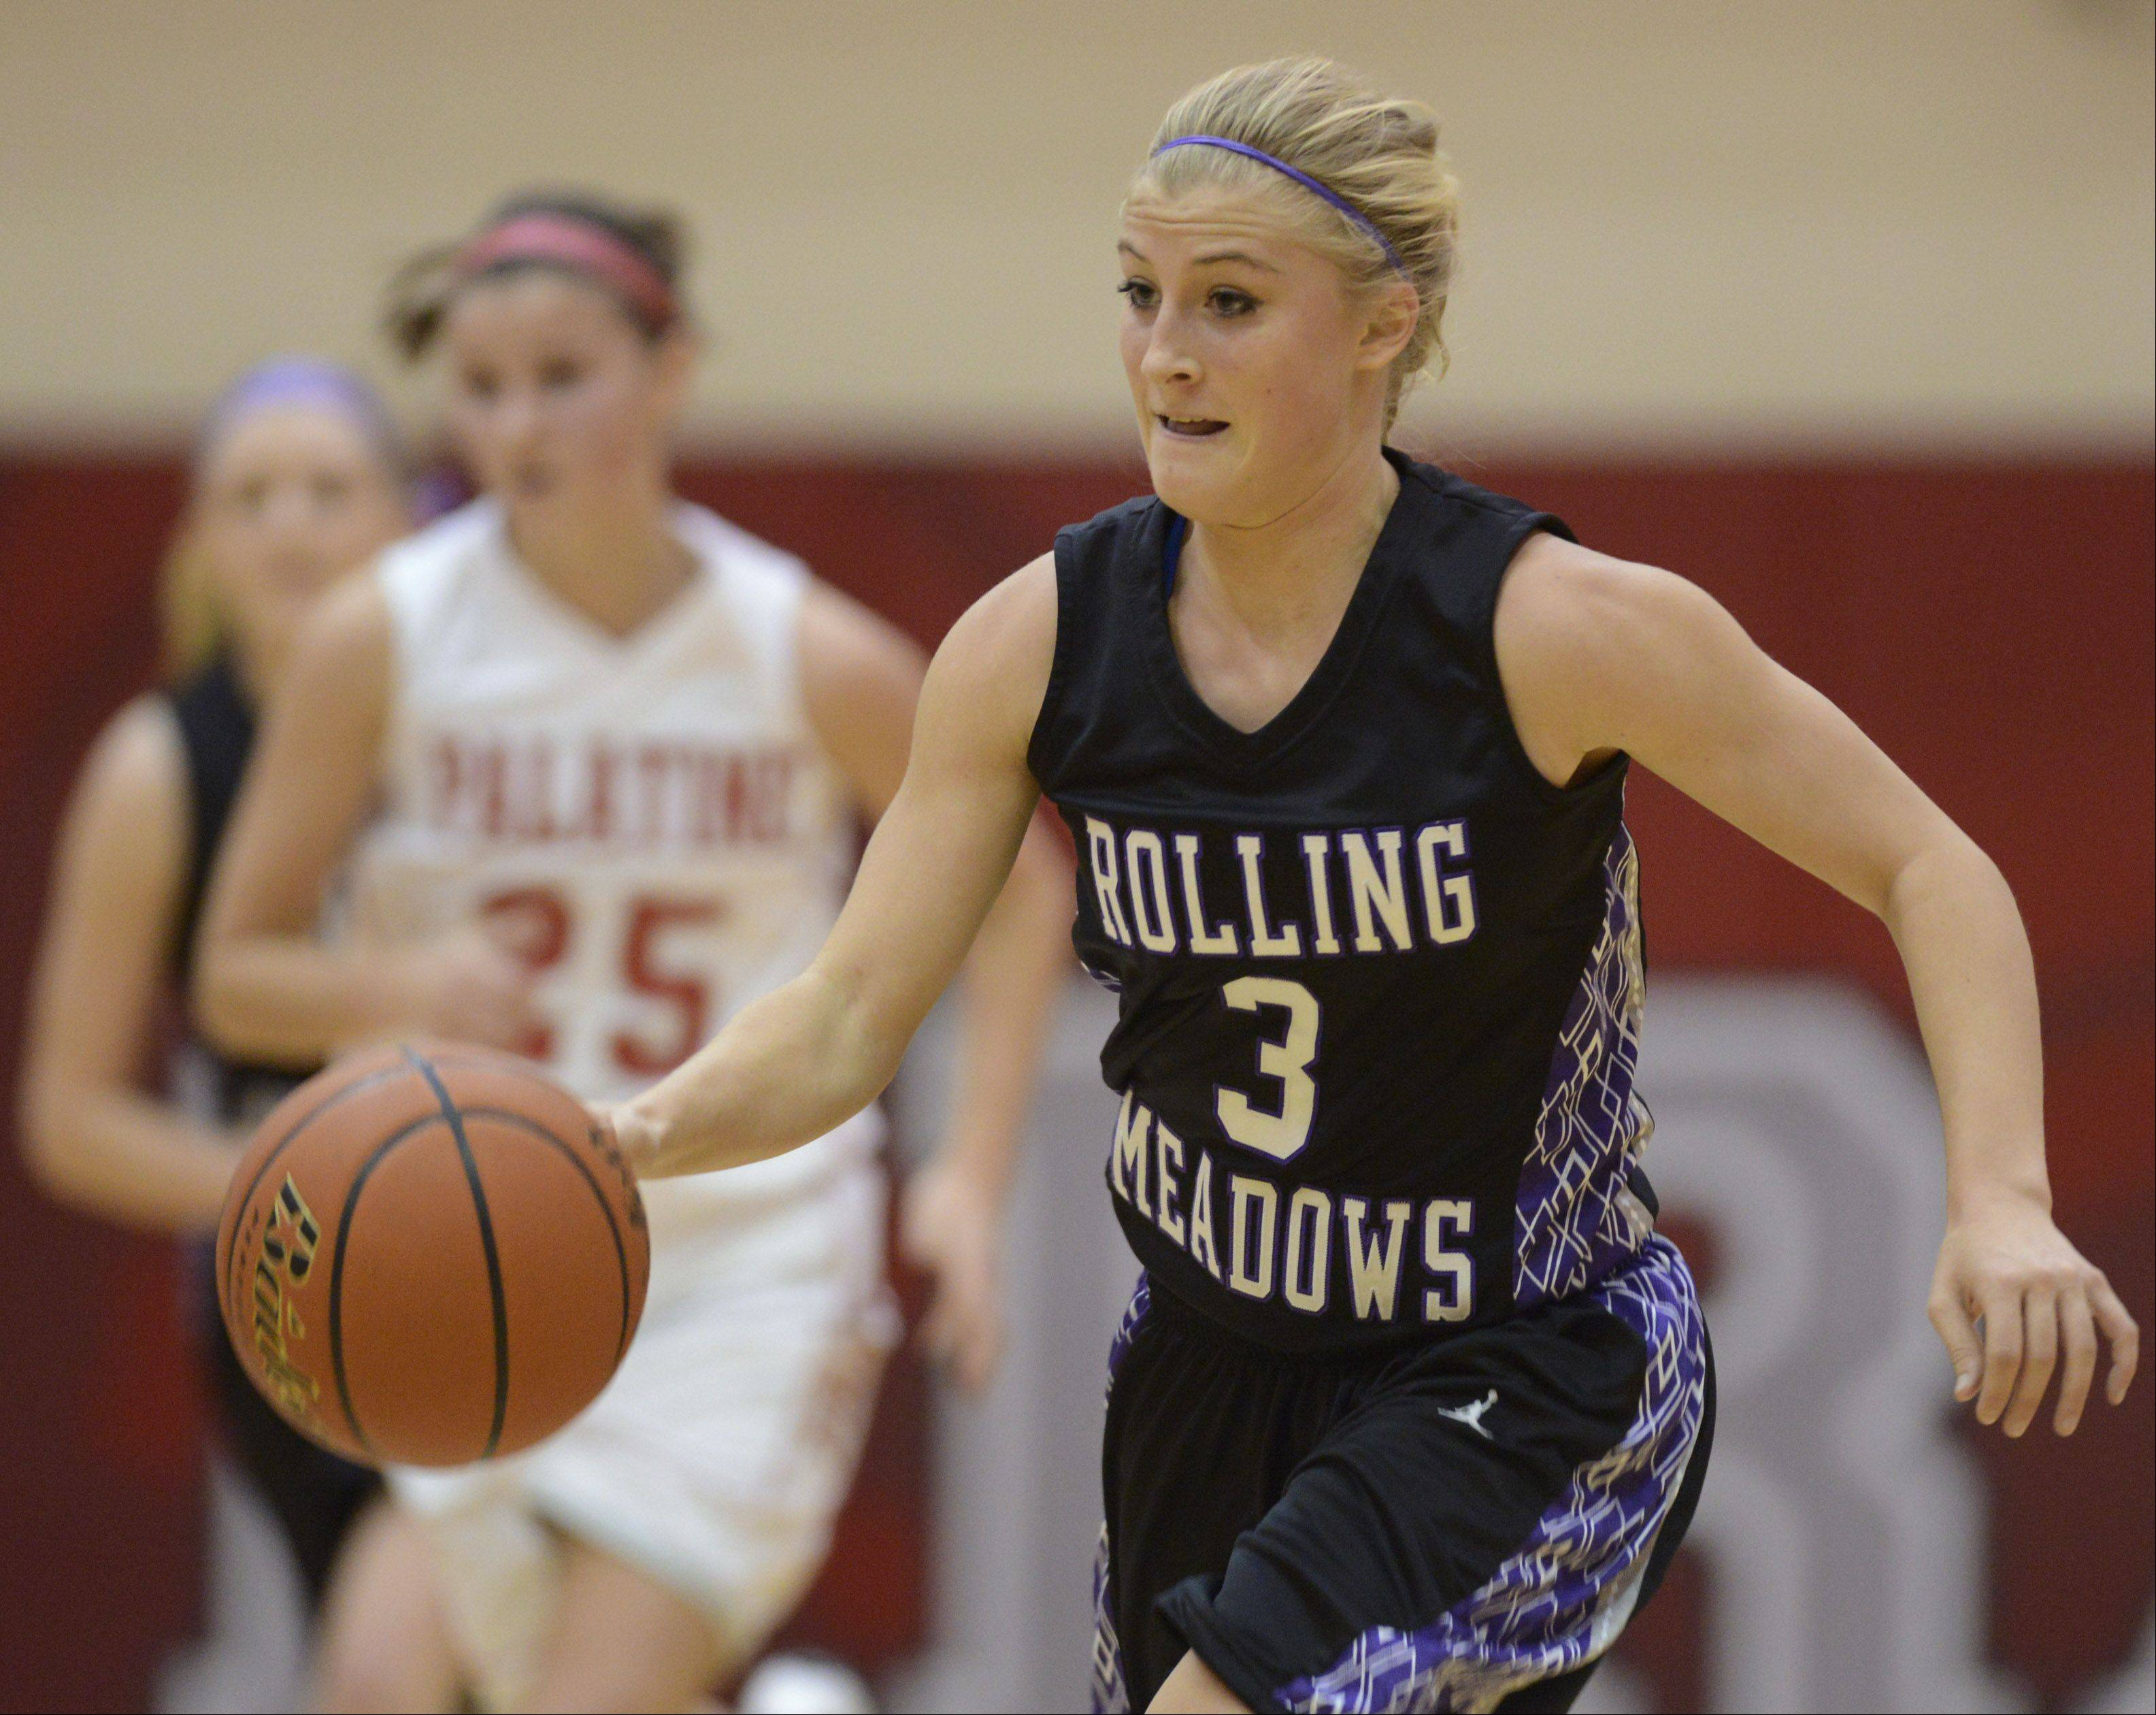 Rolling Meadows� Jackie Kemph leads a fast break against Palatine.